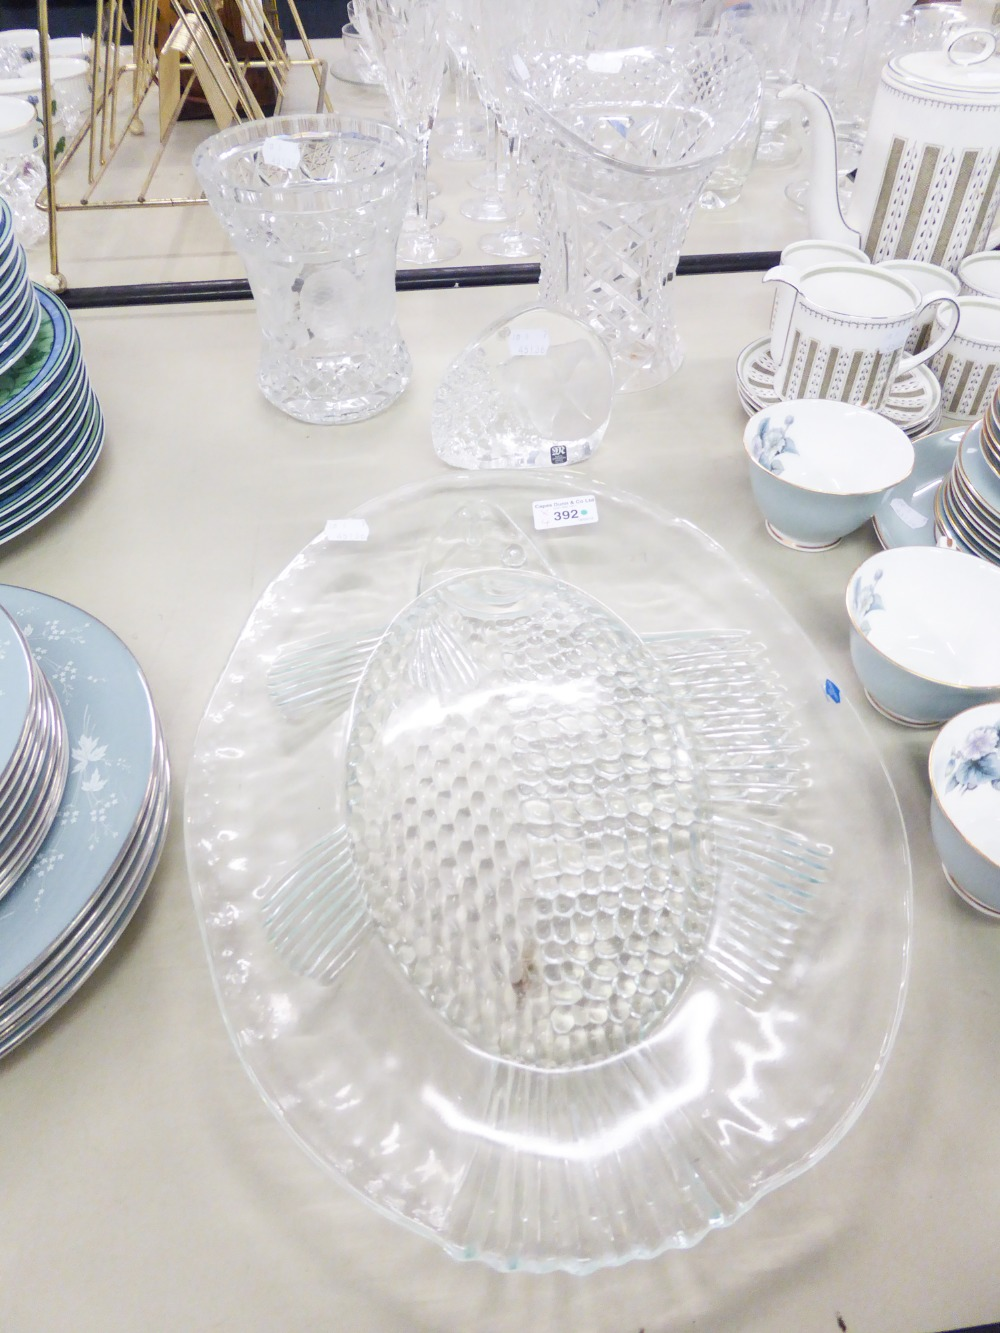 Lot 392 - A HEAVY CUT CRYSTAL VASE WITH ETCHED FRUIT DETAIL AND ANOTHER, PAPERWEIGHT AND A GLASS PLATE (4)